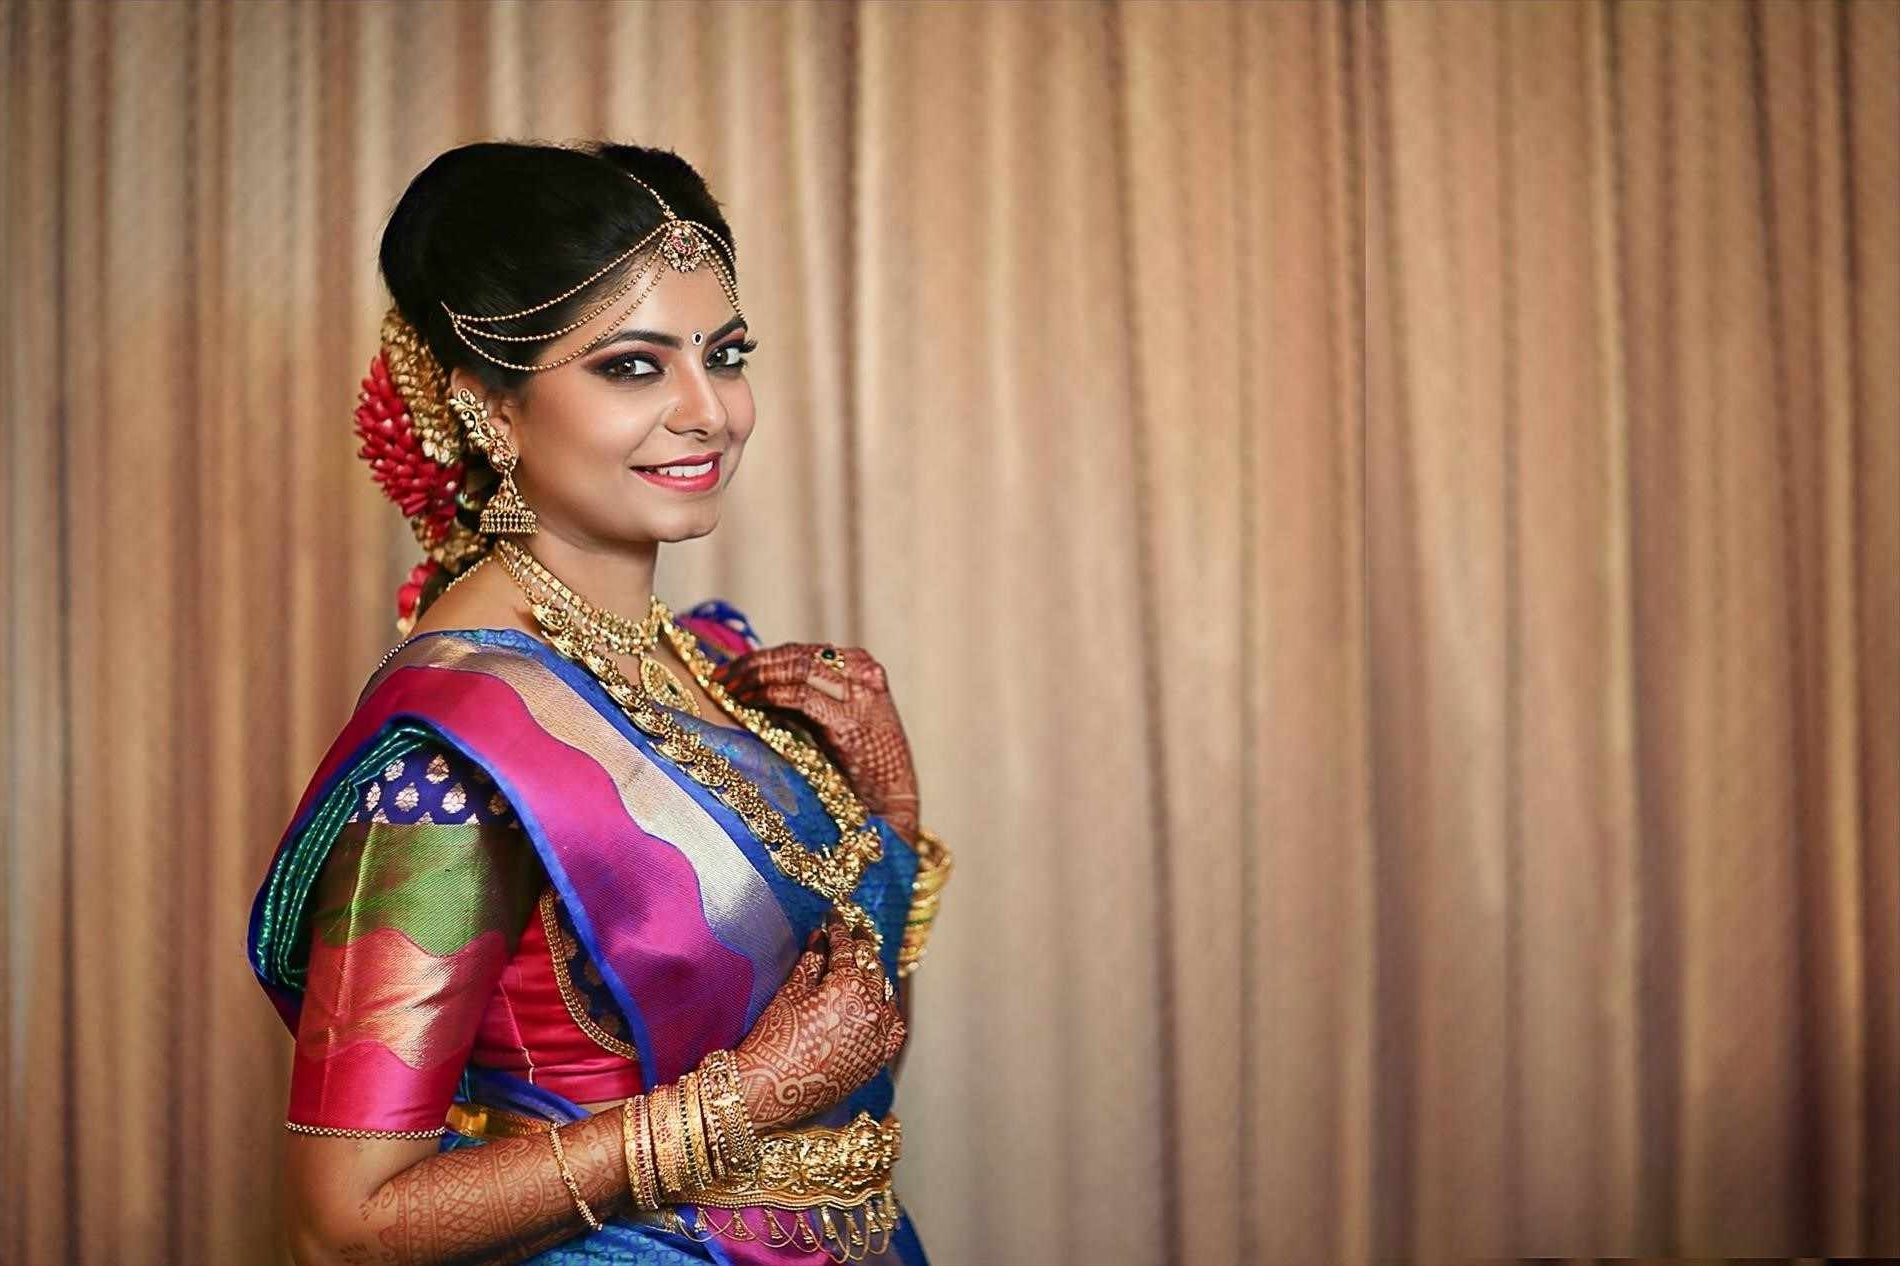 15 Wedding Hairstyles For Long Hair That Steal The Show: 15 Inspirations Of South Indian Tamil Bridal Wedding